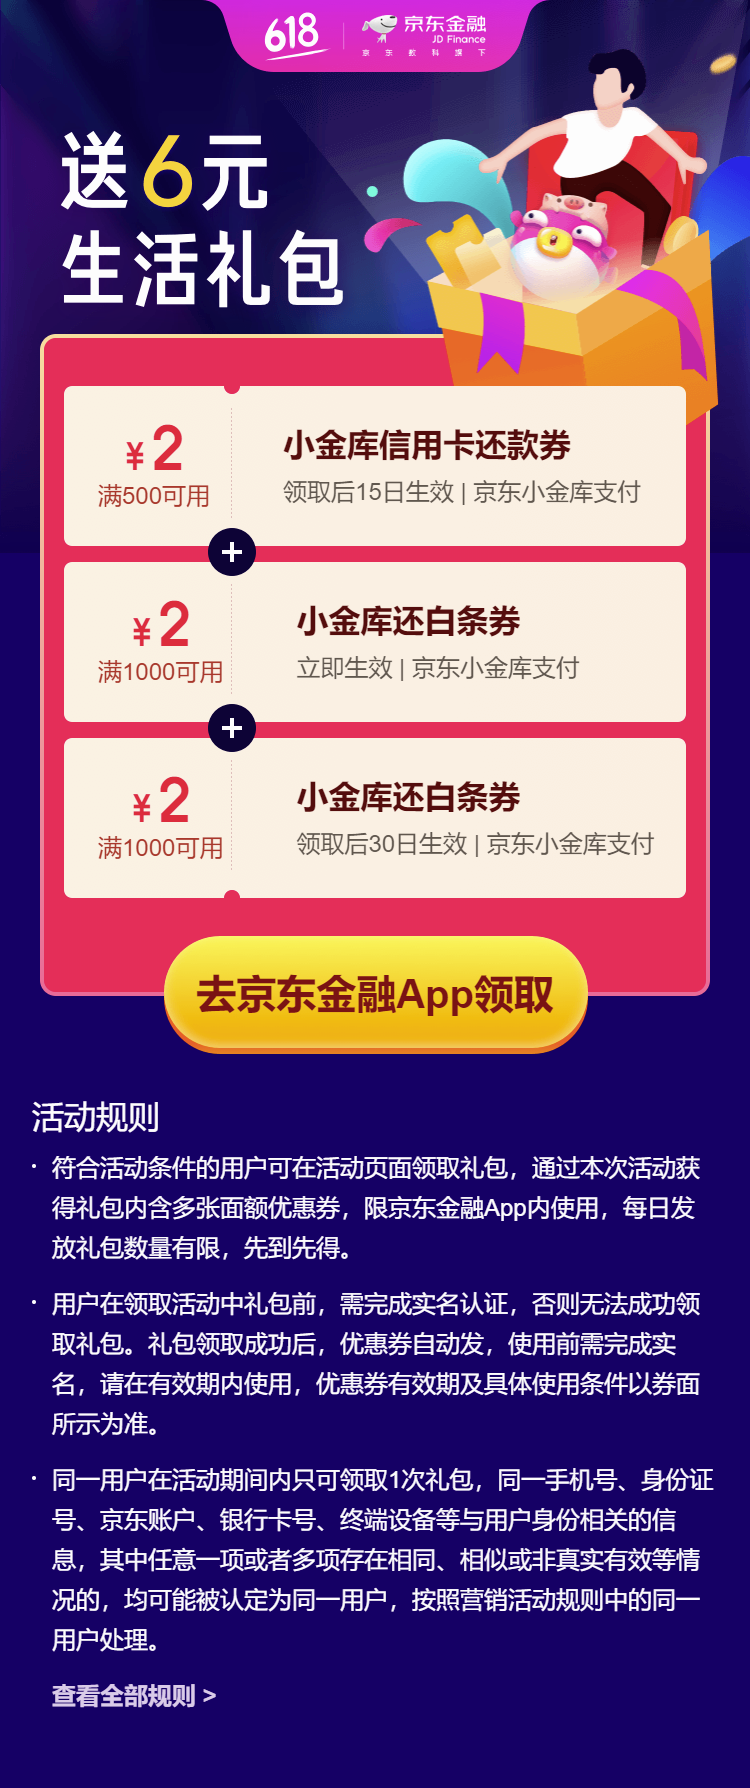 u.jr.jd.com_growing_award_index.html_type=618old6yuanquan&utm_source=uep_1559057993343(iPhone 6_7_8).png